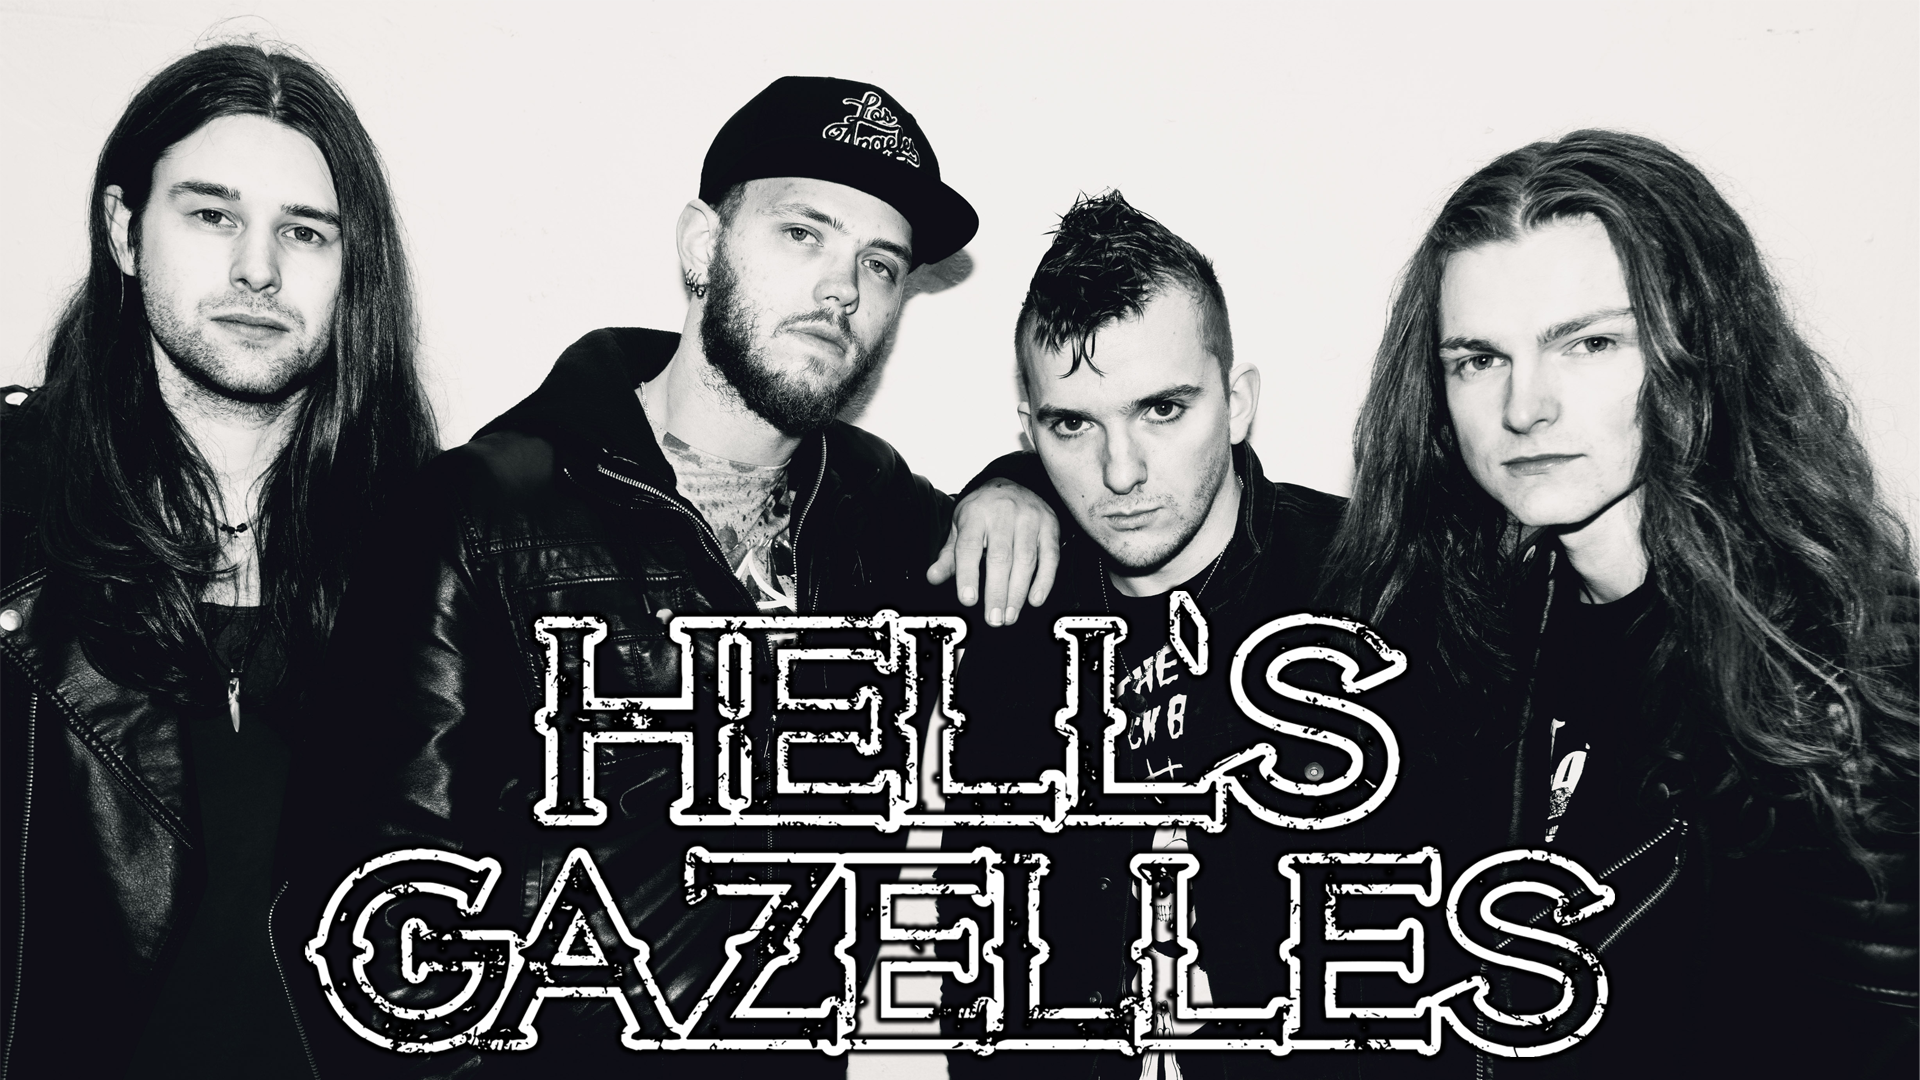 Hell's Gazelles rock band